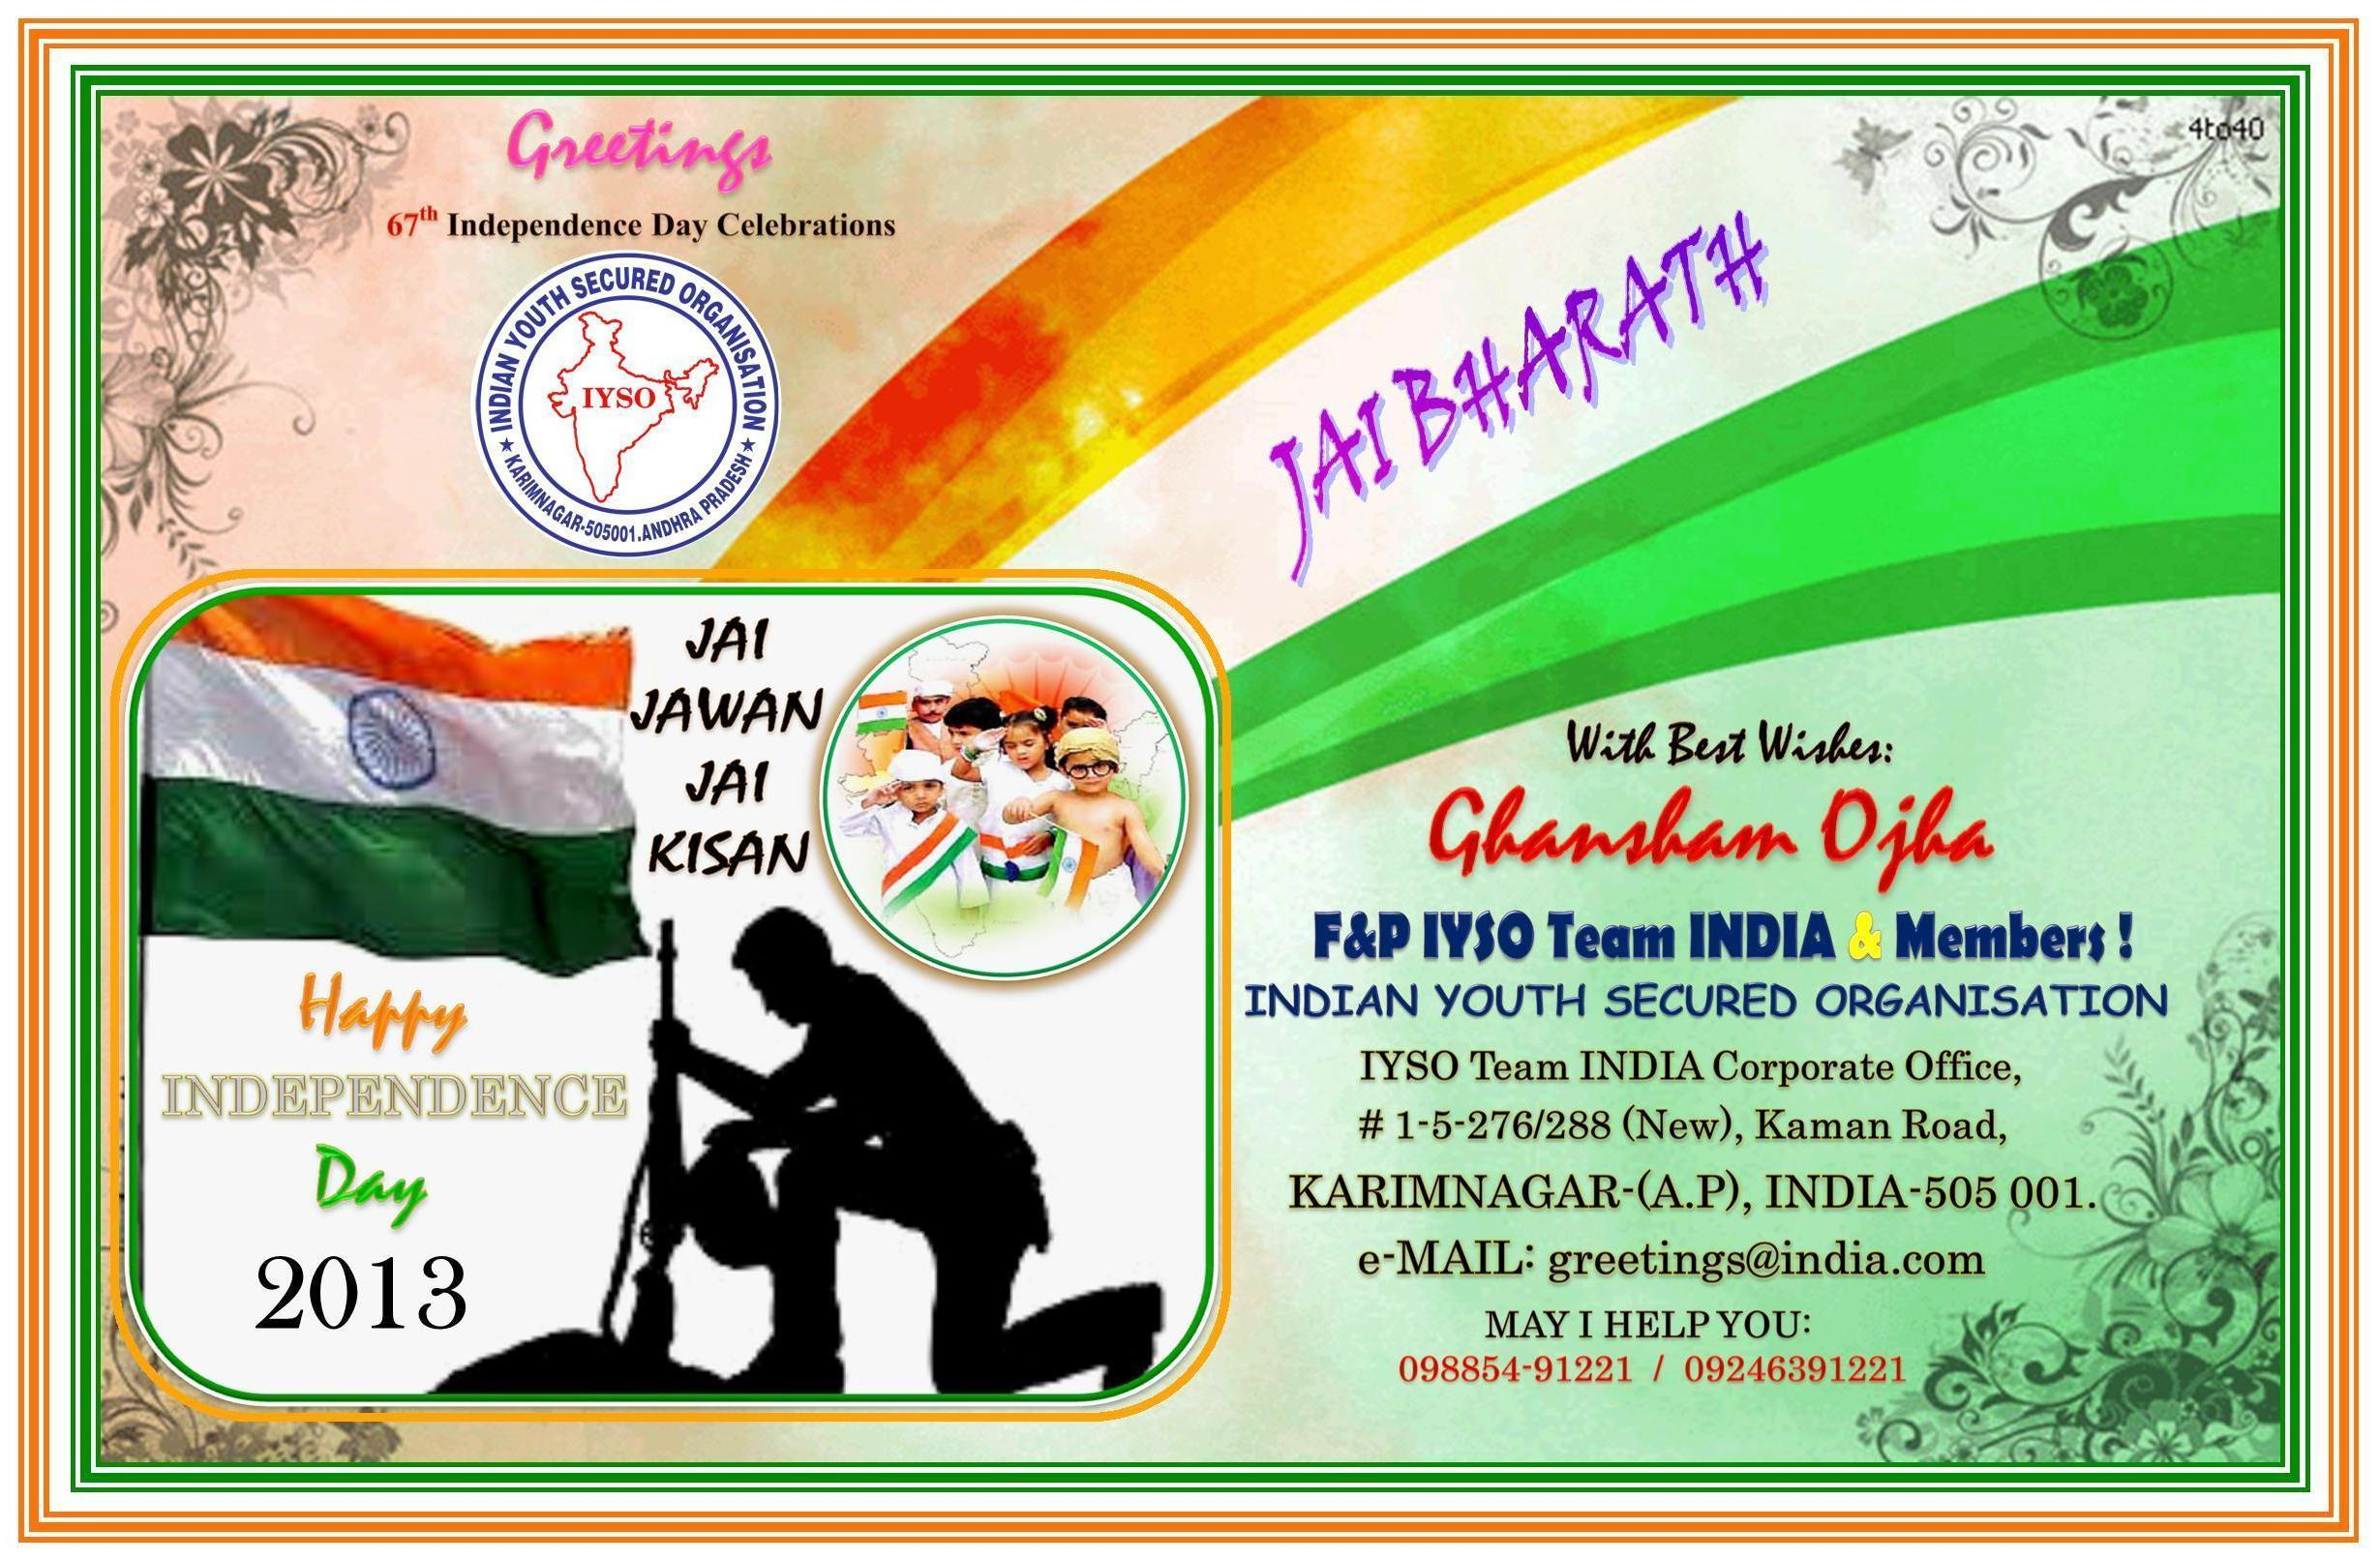 Greetings iyso team india greets one and all a happy independence greetings iyso team india greets one and all a happy independence day on the eve of indias 67th independence day celebrations kristyandbryce Gallery